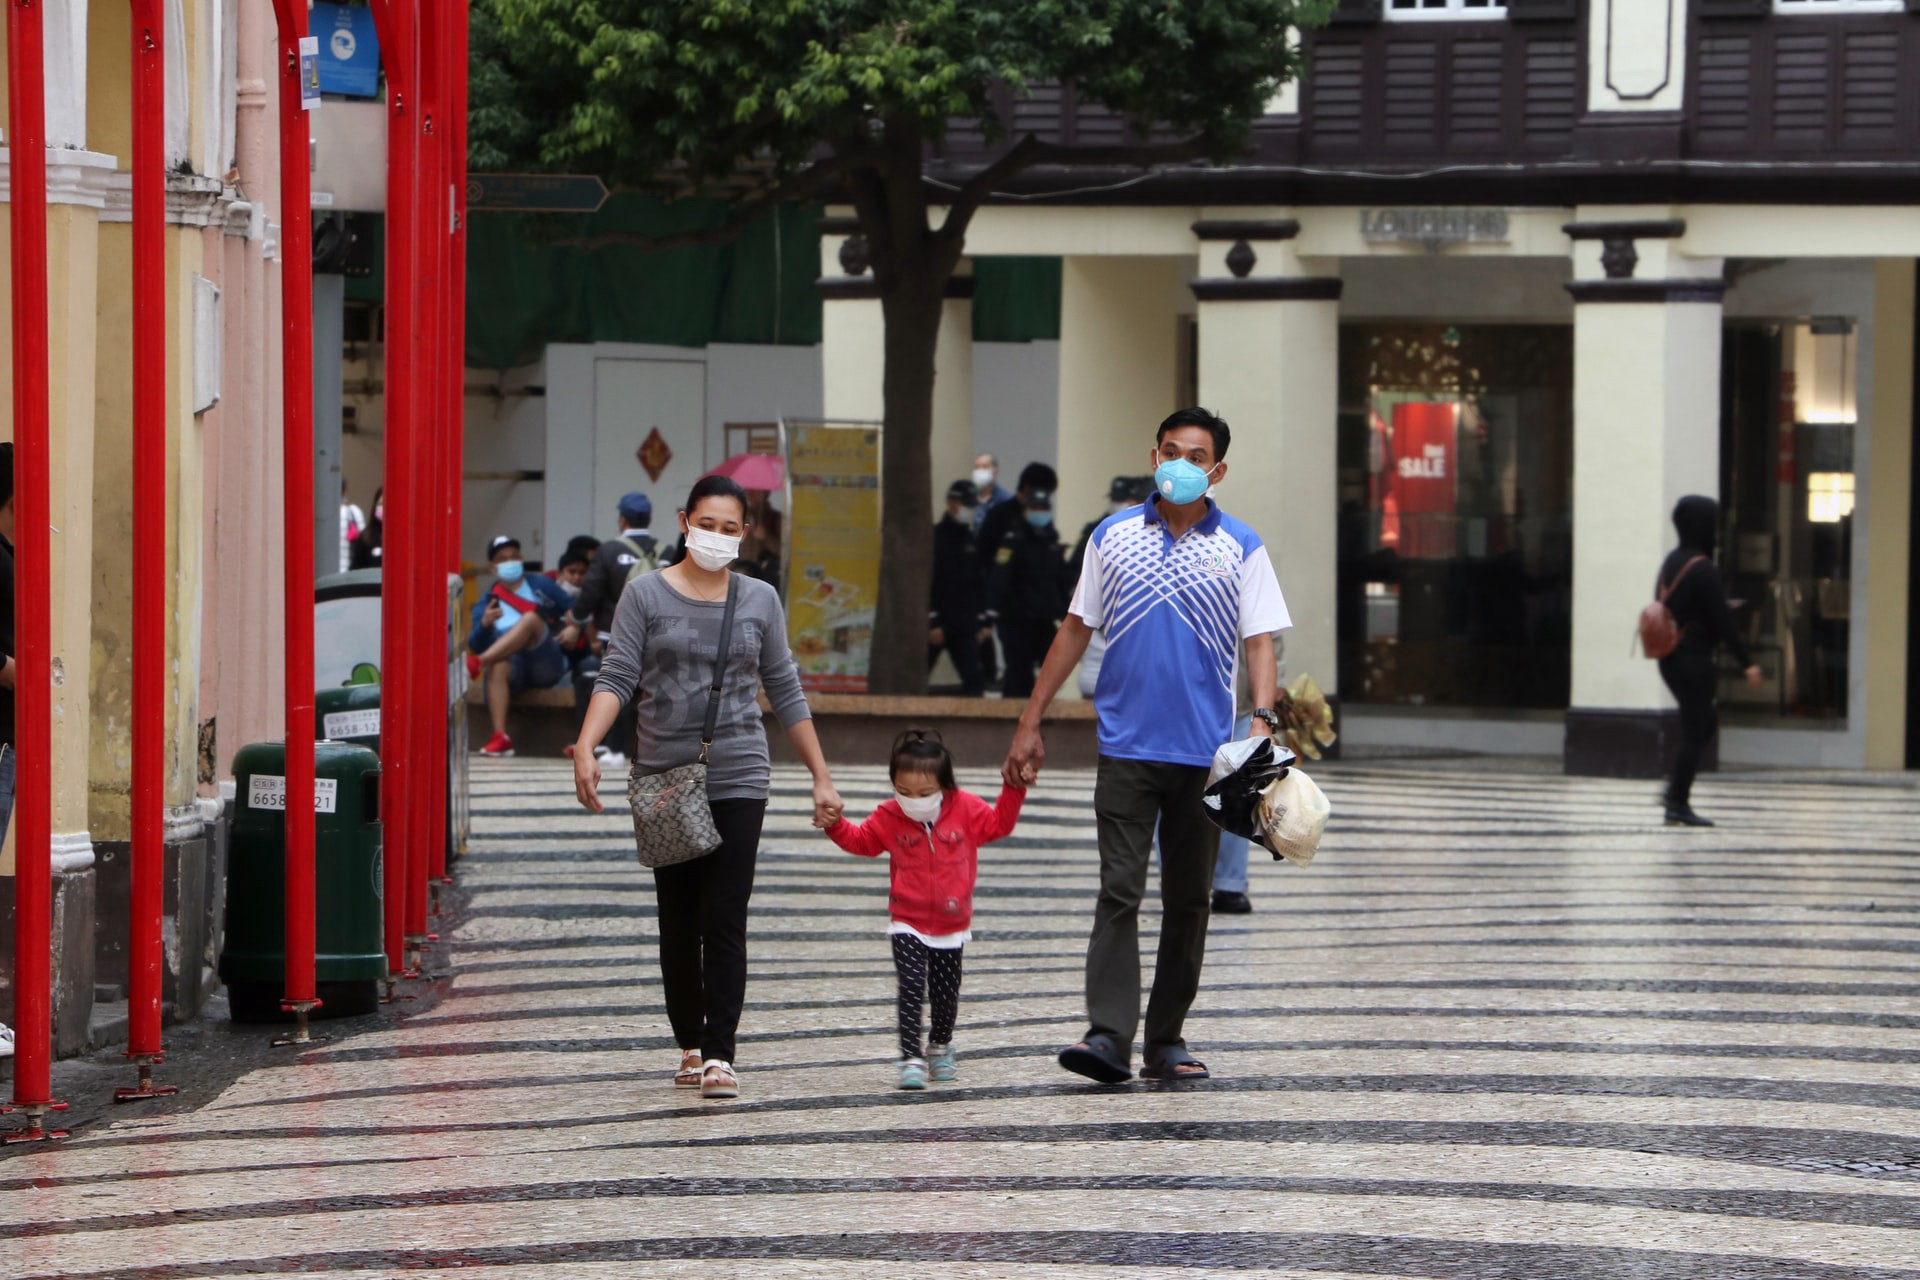 A couple and their child walk down the street, wearing masks and holding hands